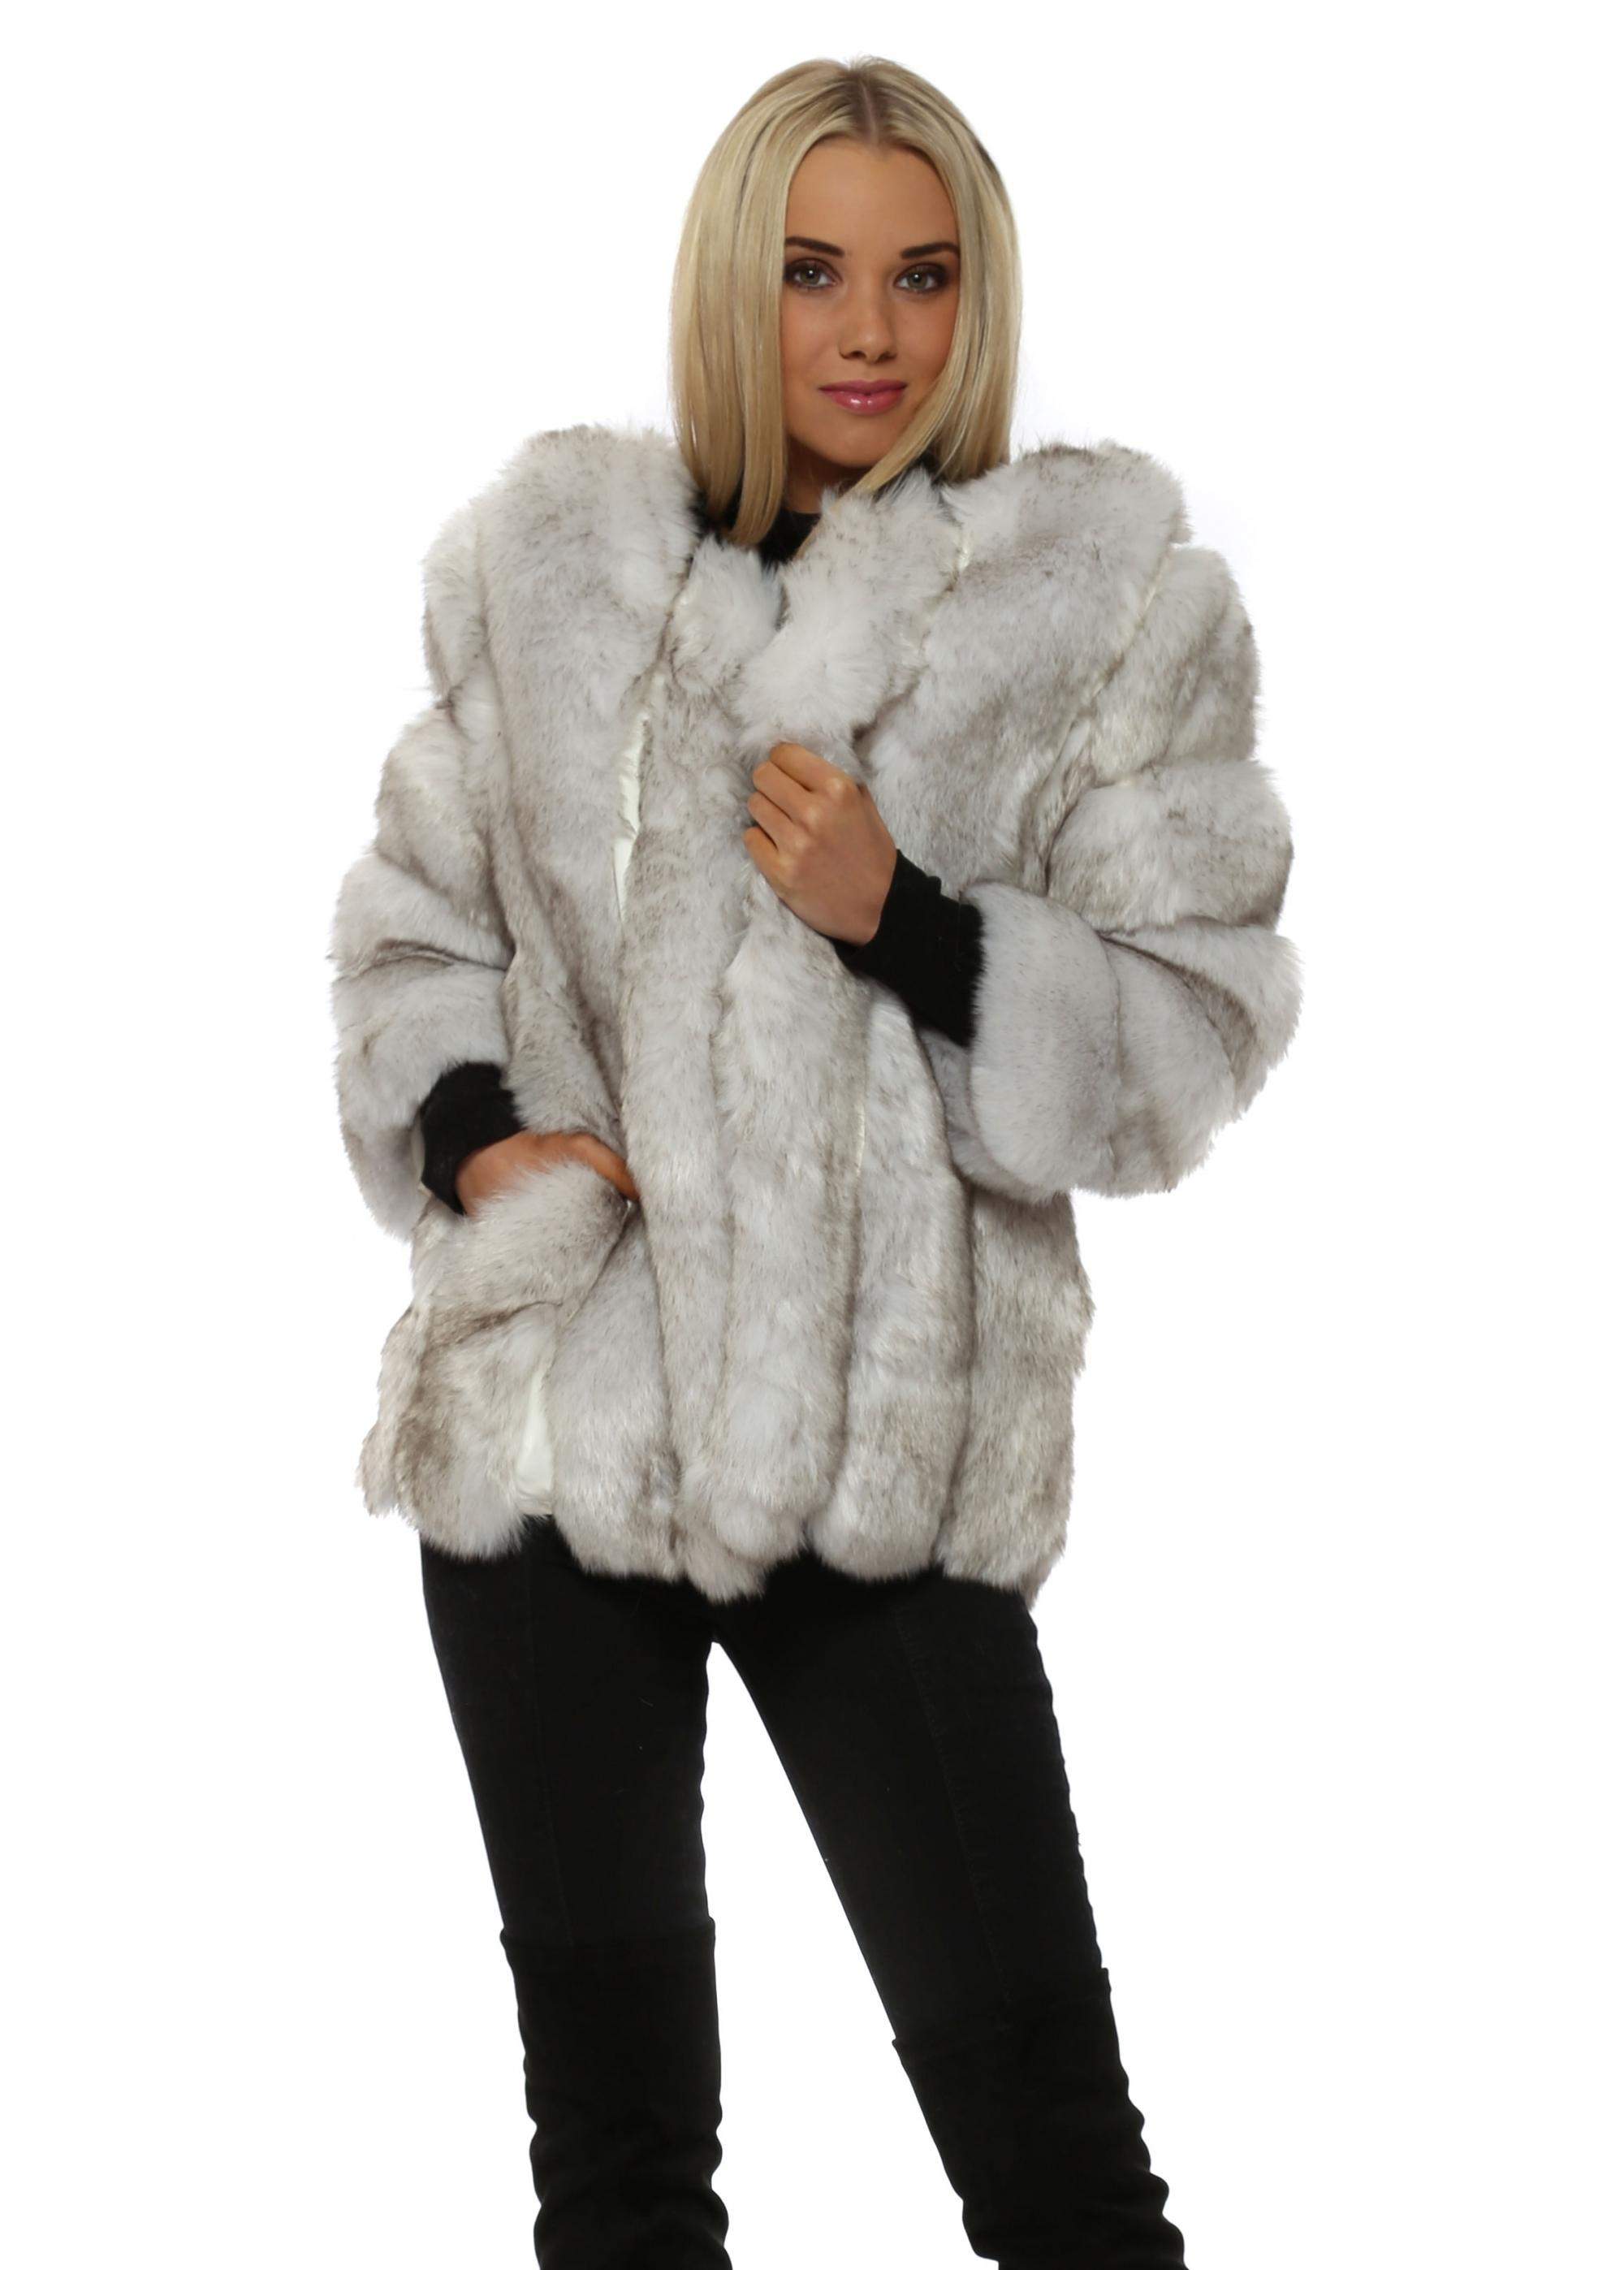 The most luxury and elegant faux fur coats we make for you. Feel the quality and comfort built in every piece of Adelaqueen coats.